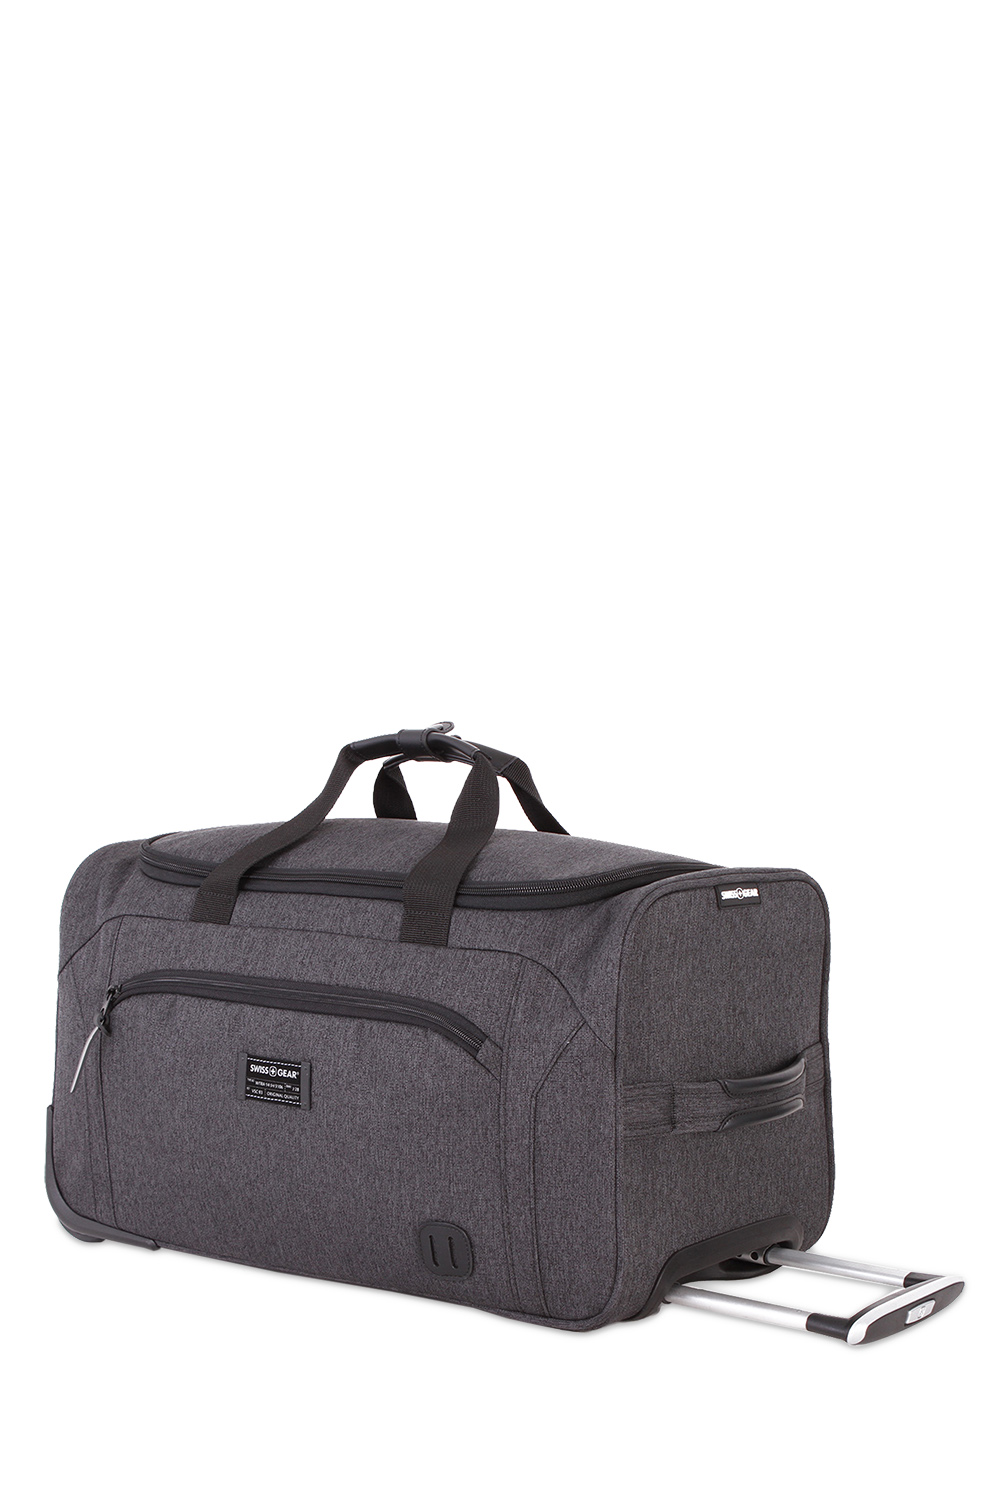 Online Exclusive Swissgear 7638 Getaway 19 Rolling Duffel Bag Dark Gray